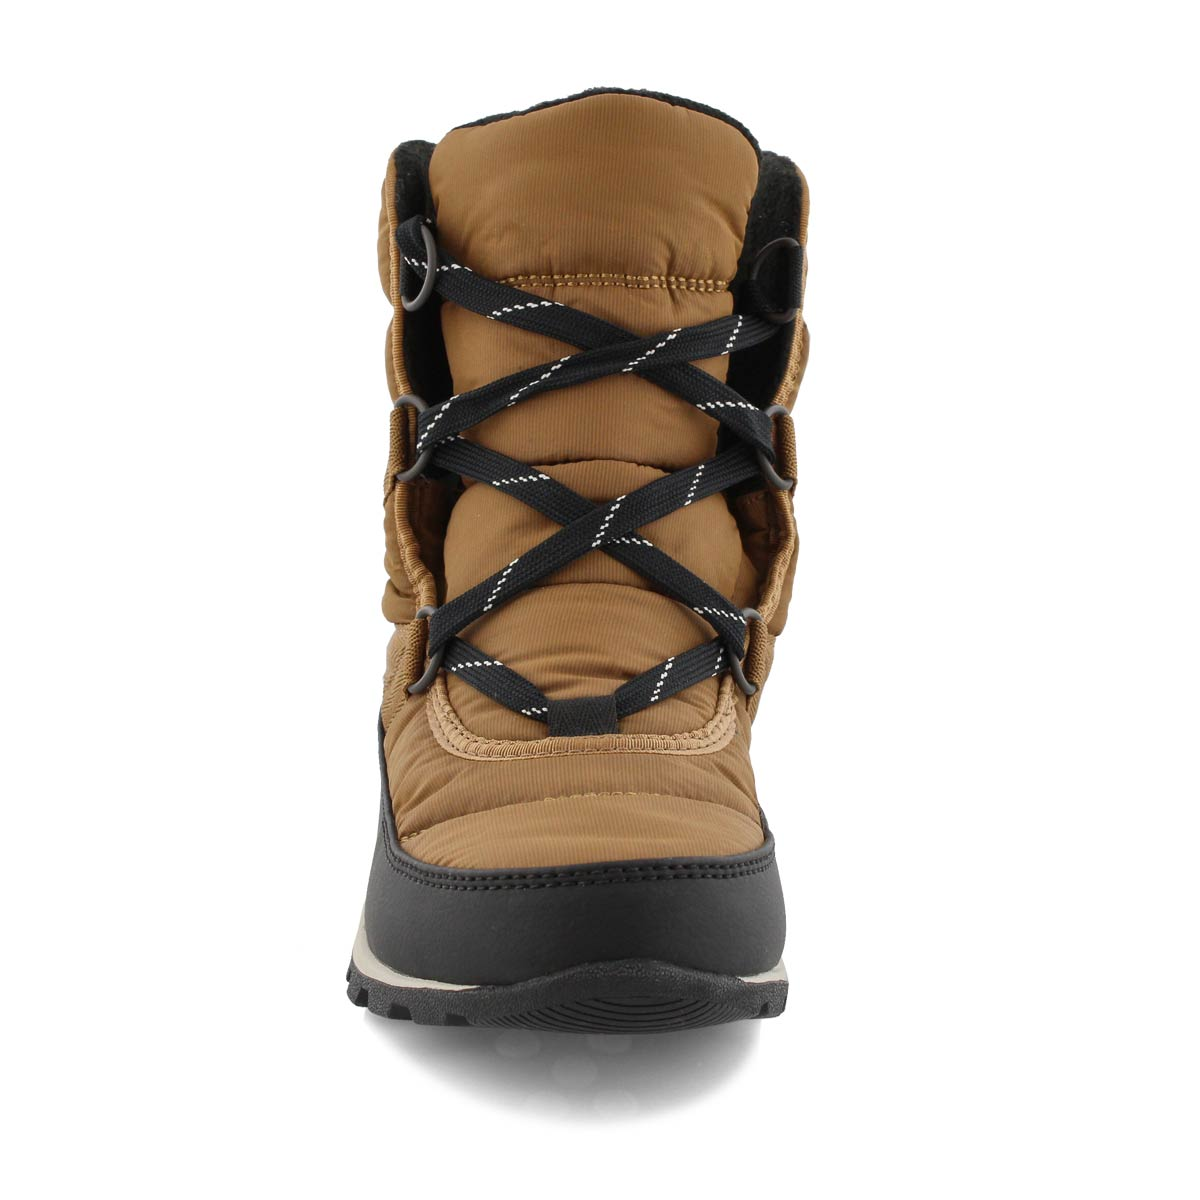 Lds WhitneyShortLace elk wtp winter boot